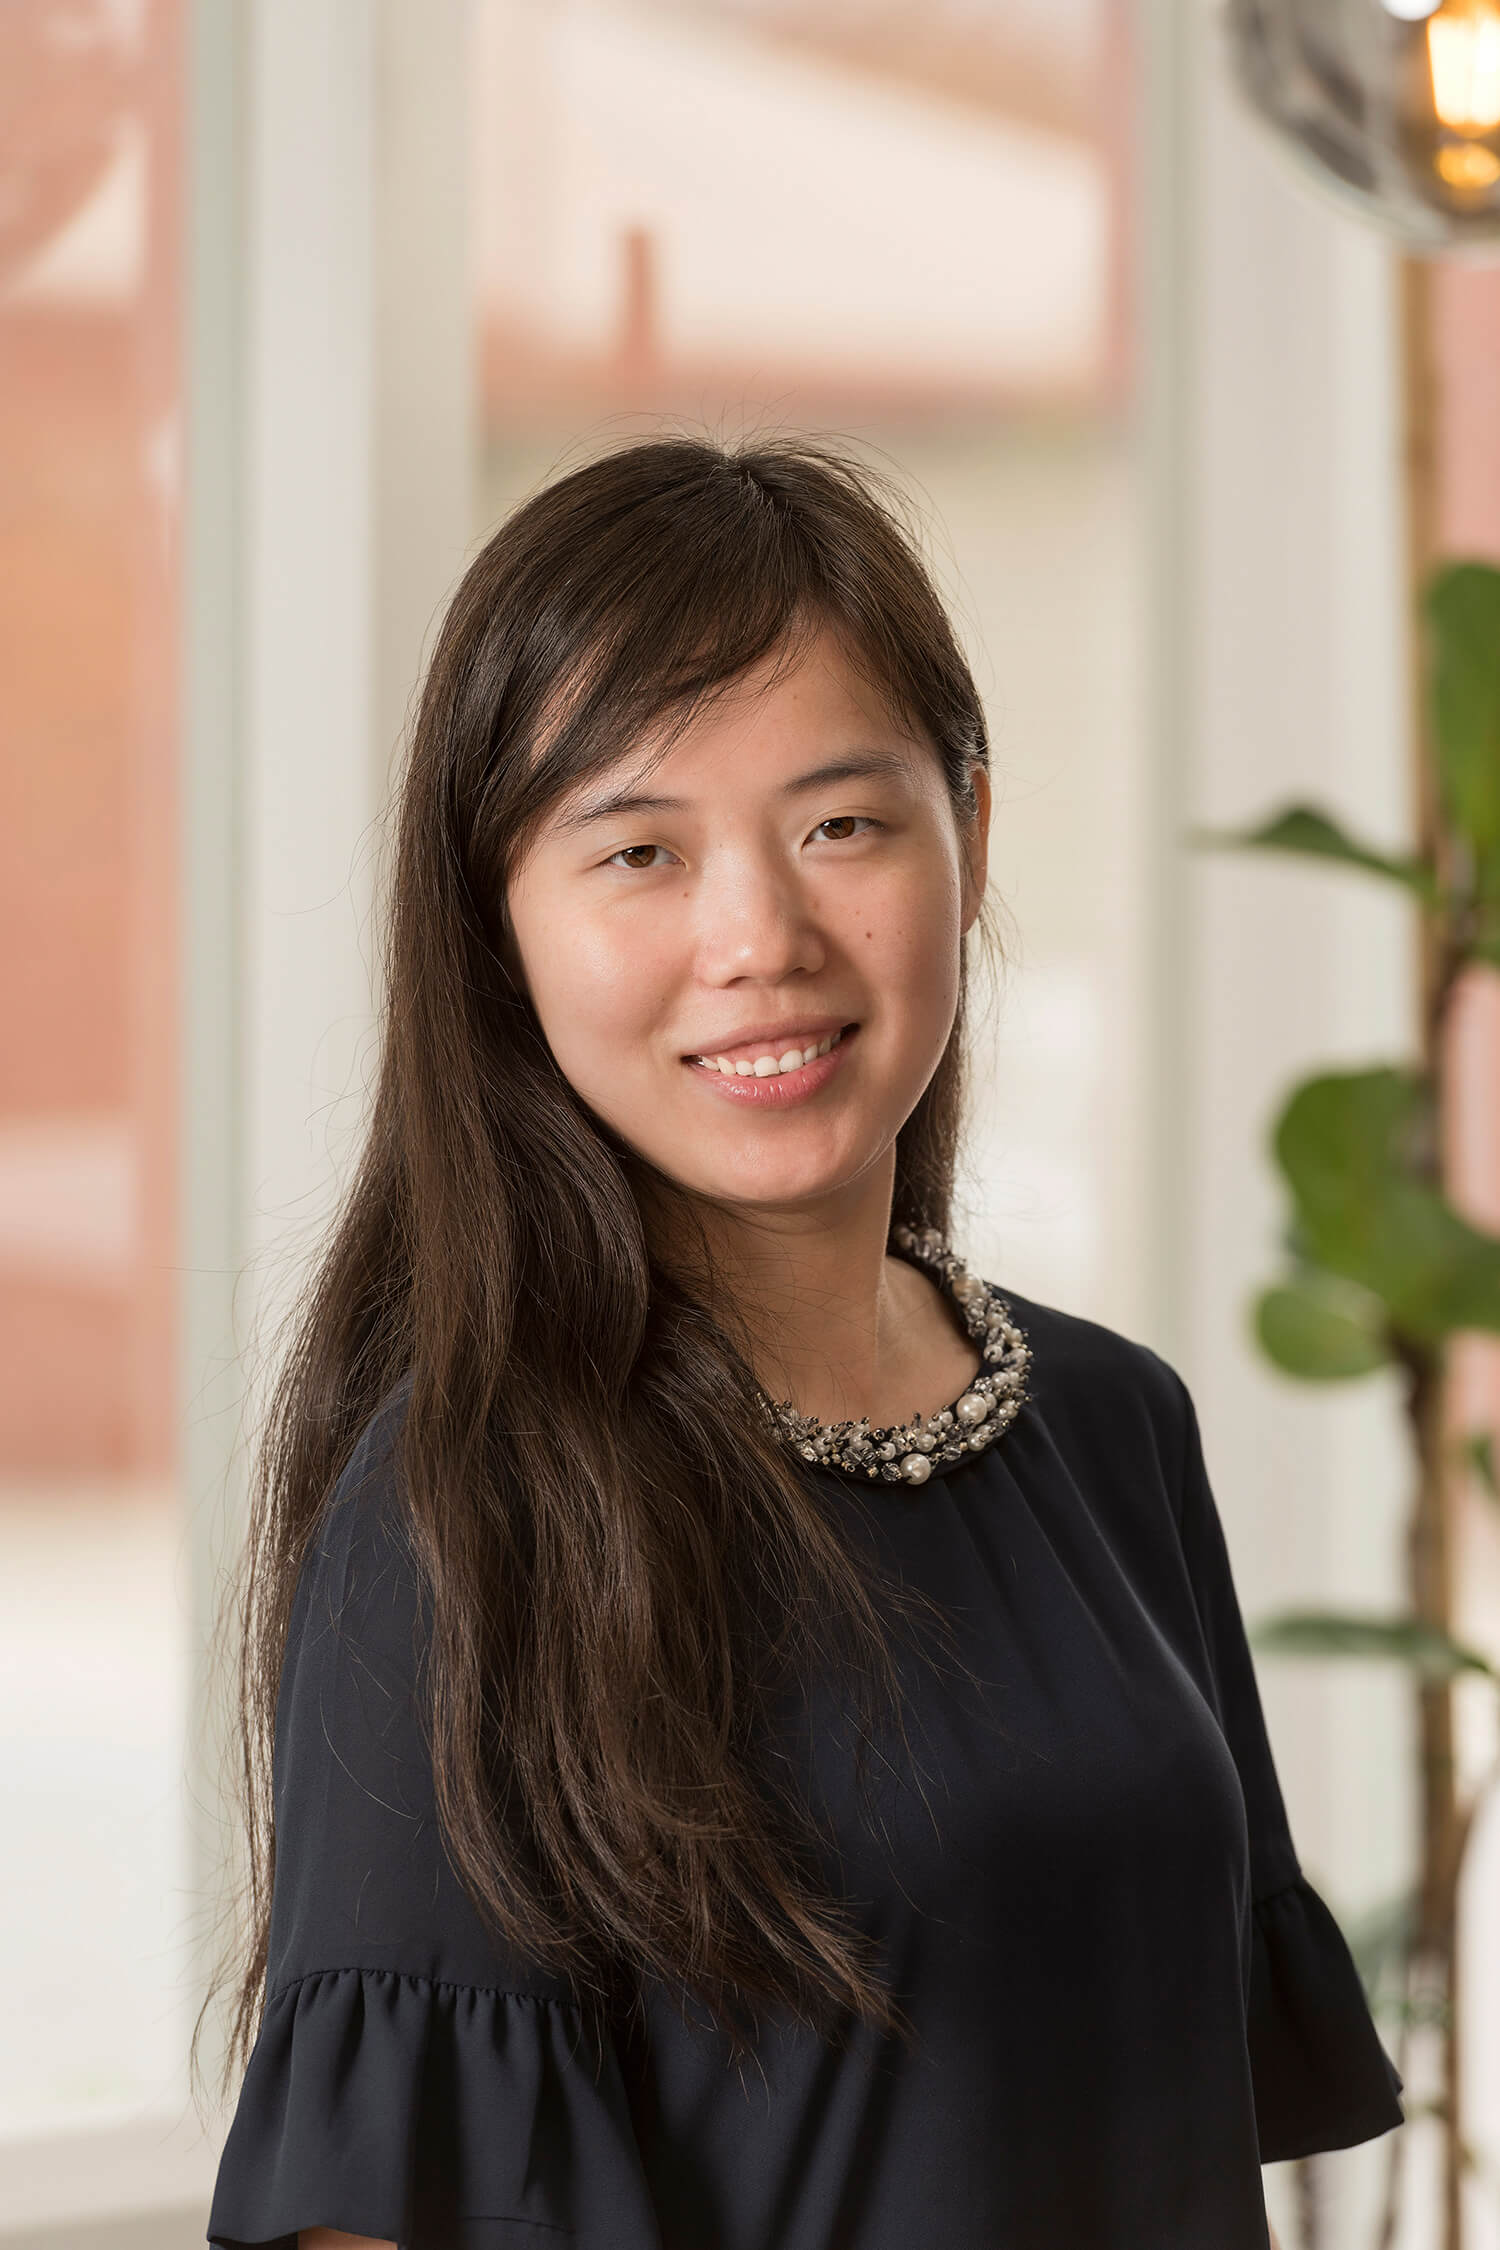 Qing Liao - <p>Qing has been a valued member of ELK since 2017. Her specialty is construction documentation and has worked on all different typologies from alterations & additions, single & multi residential projects to residential flat buildings.<br /> Qing's spare time is 100% occupied by her beautiful little boy, Wei Wei. She's busy reengineering her home, making sure everything is out of reach of tiny hands. Qing is looking forward to some down time with her drawing tablet & keyboard when her bub is a little older.</p>